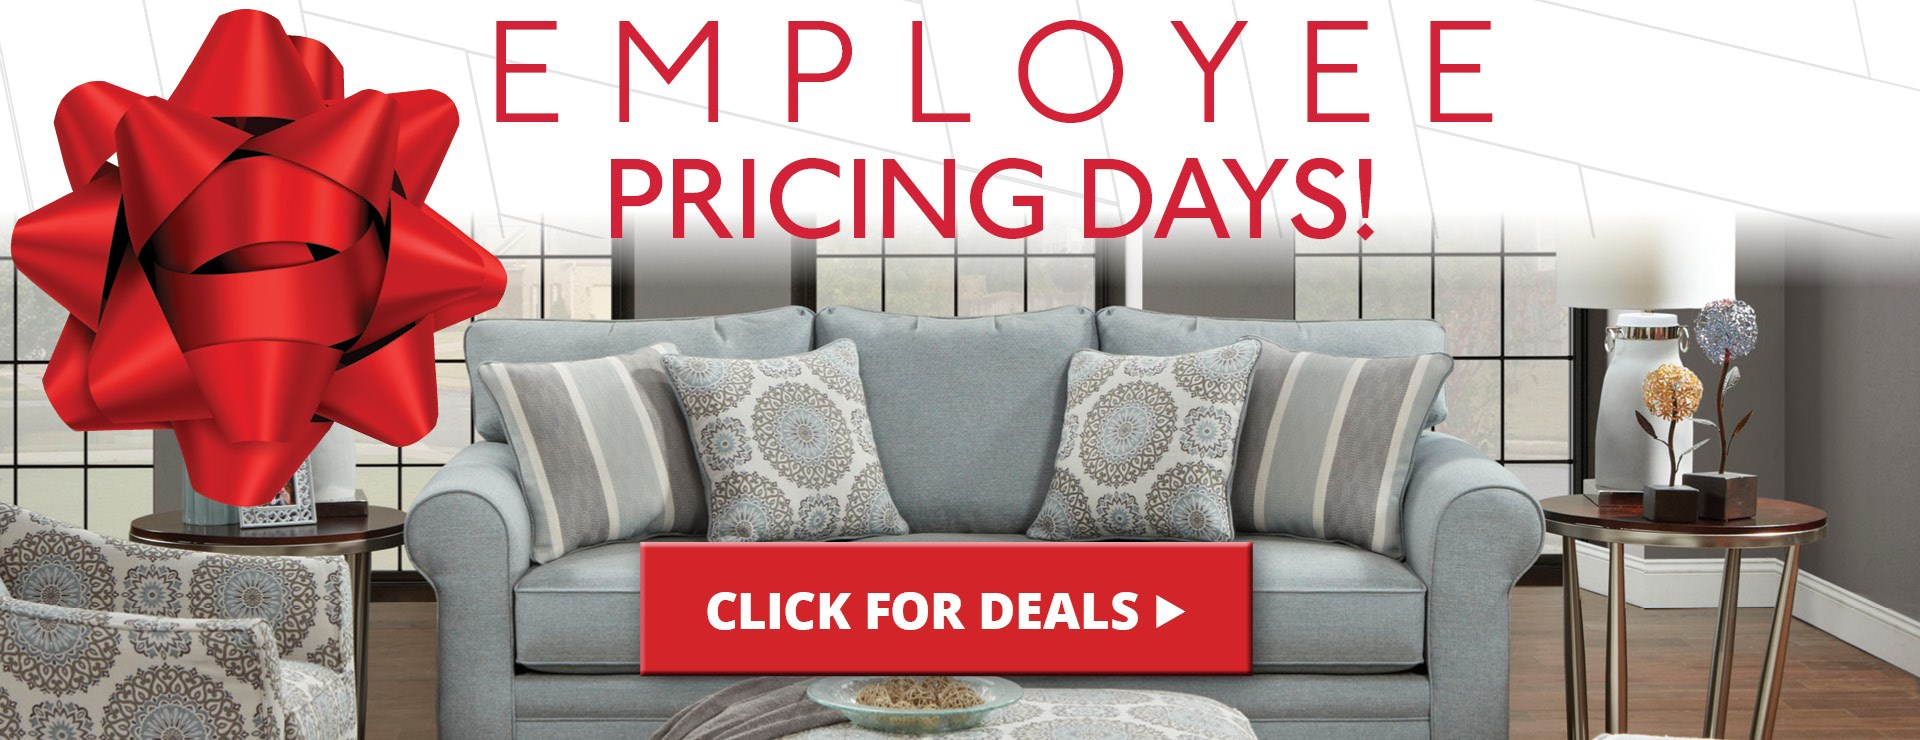 Employee Pricing Event